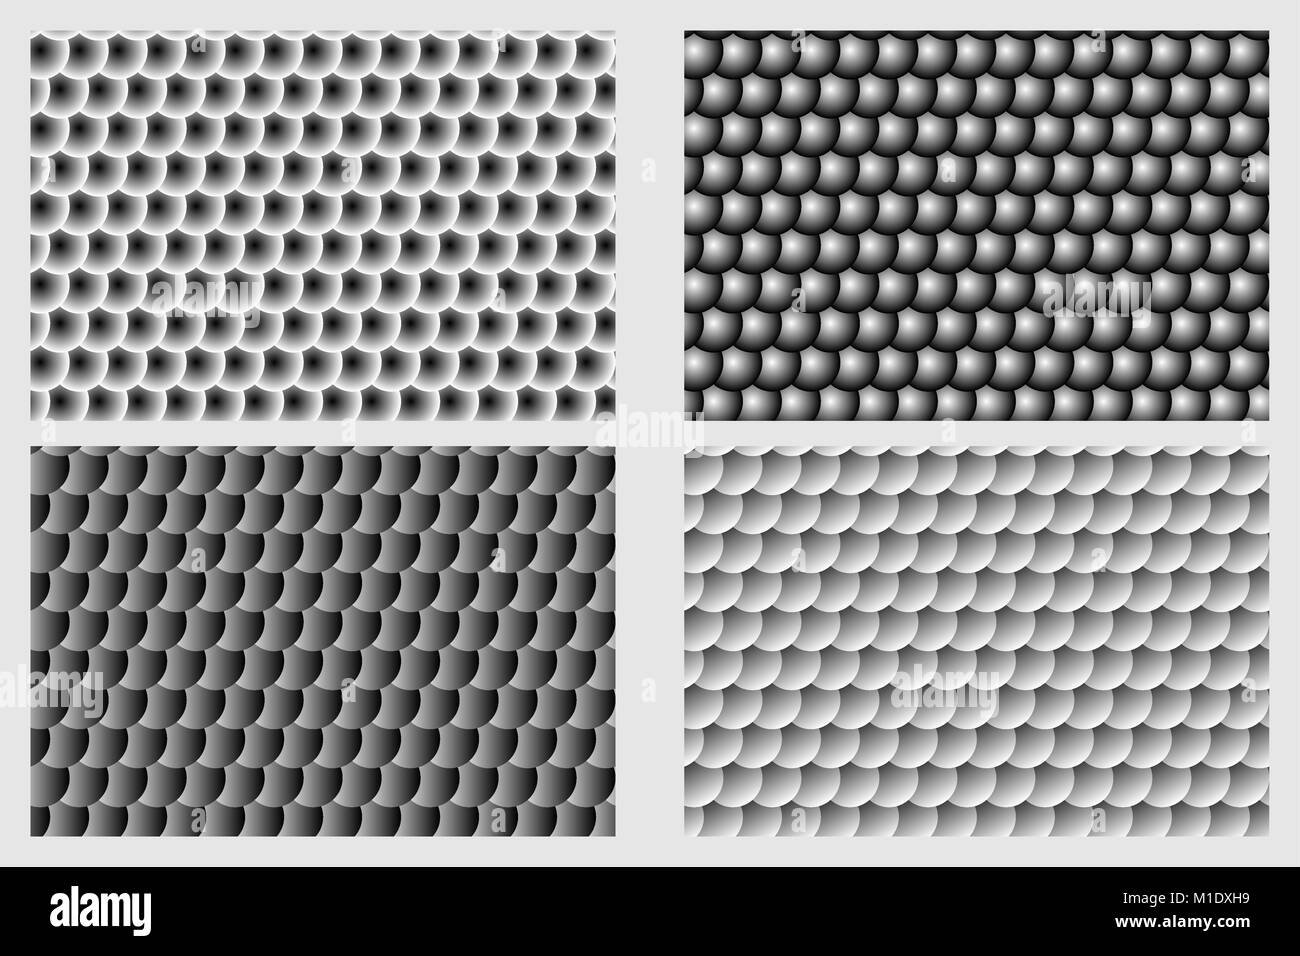 Fish scale pattern, Simple circular background - black and white set - vector circle pattern - Stock Image